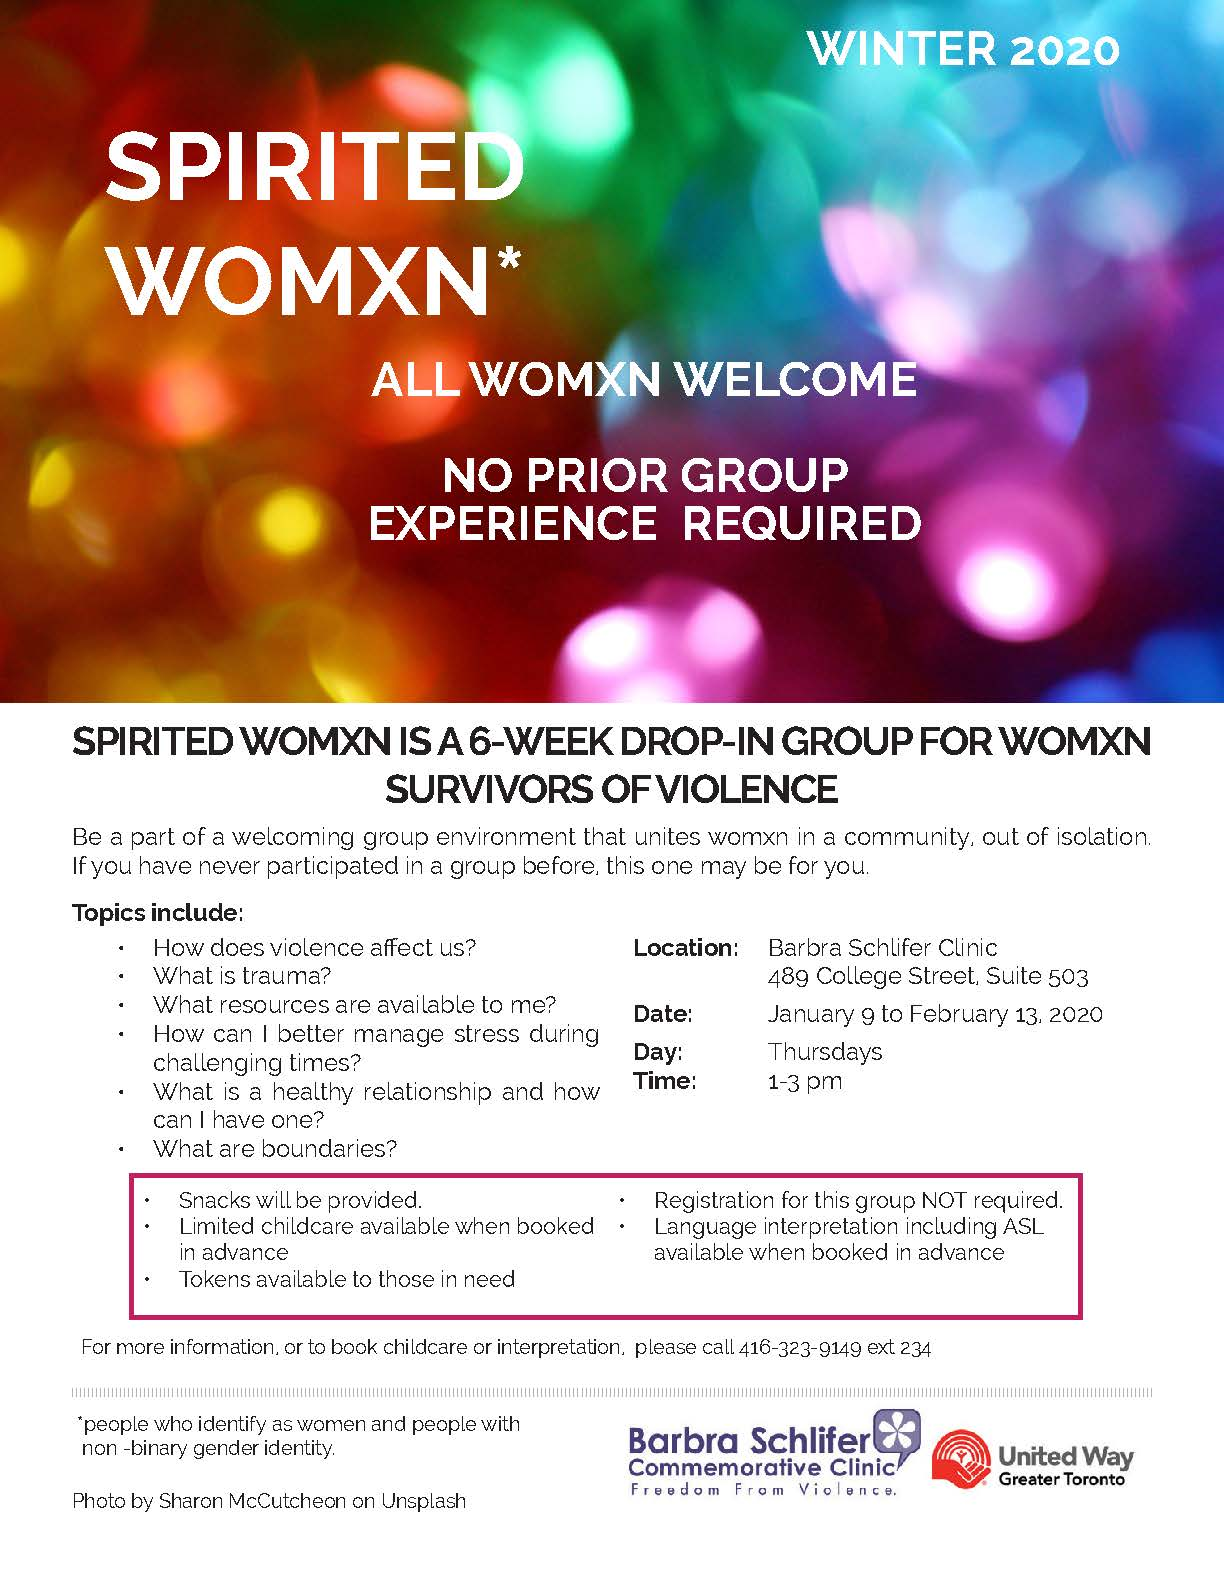 photo of Spirited Womxn flyer